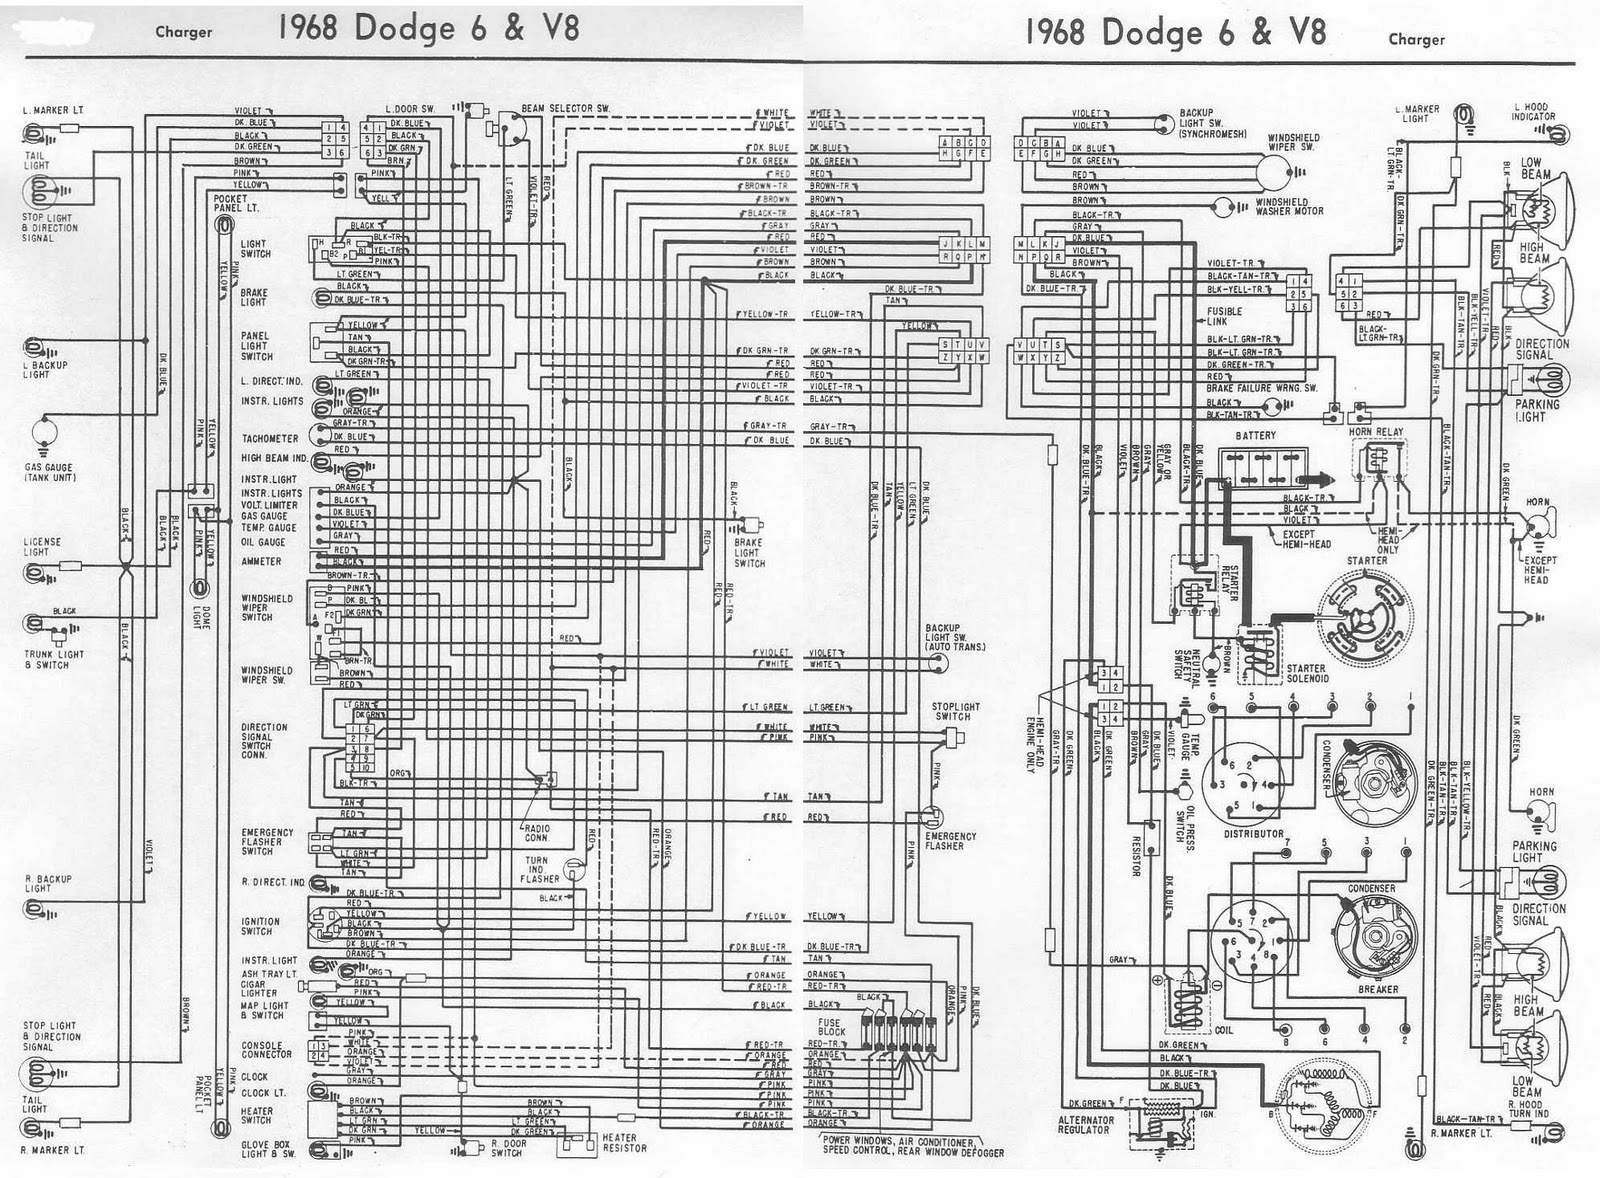 Dodge+Charger+1968+6+and+V8+Complete+Electrical+Wiring+Diagram dodge charger wiring diagram dodge wiring diagrams instruction 1970 dodge coronet wiring diagram at crackthecode.co